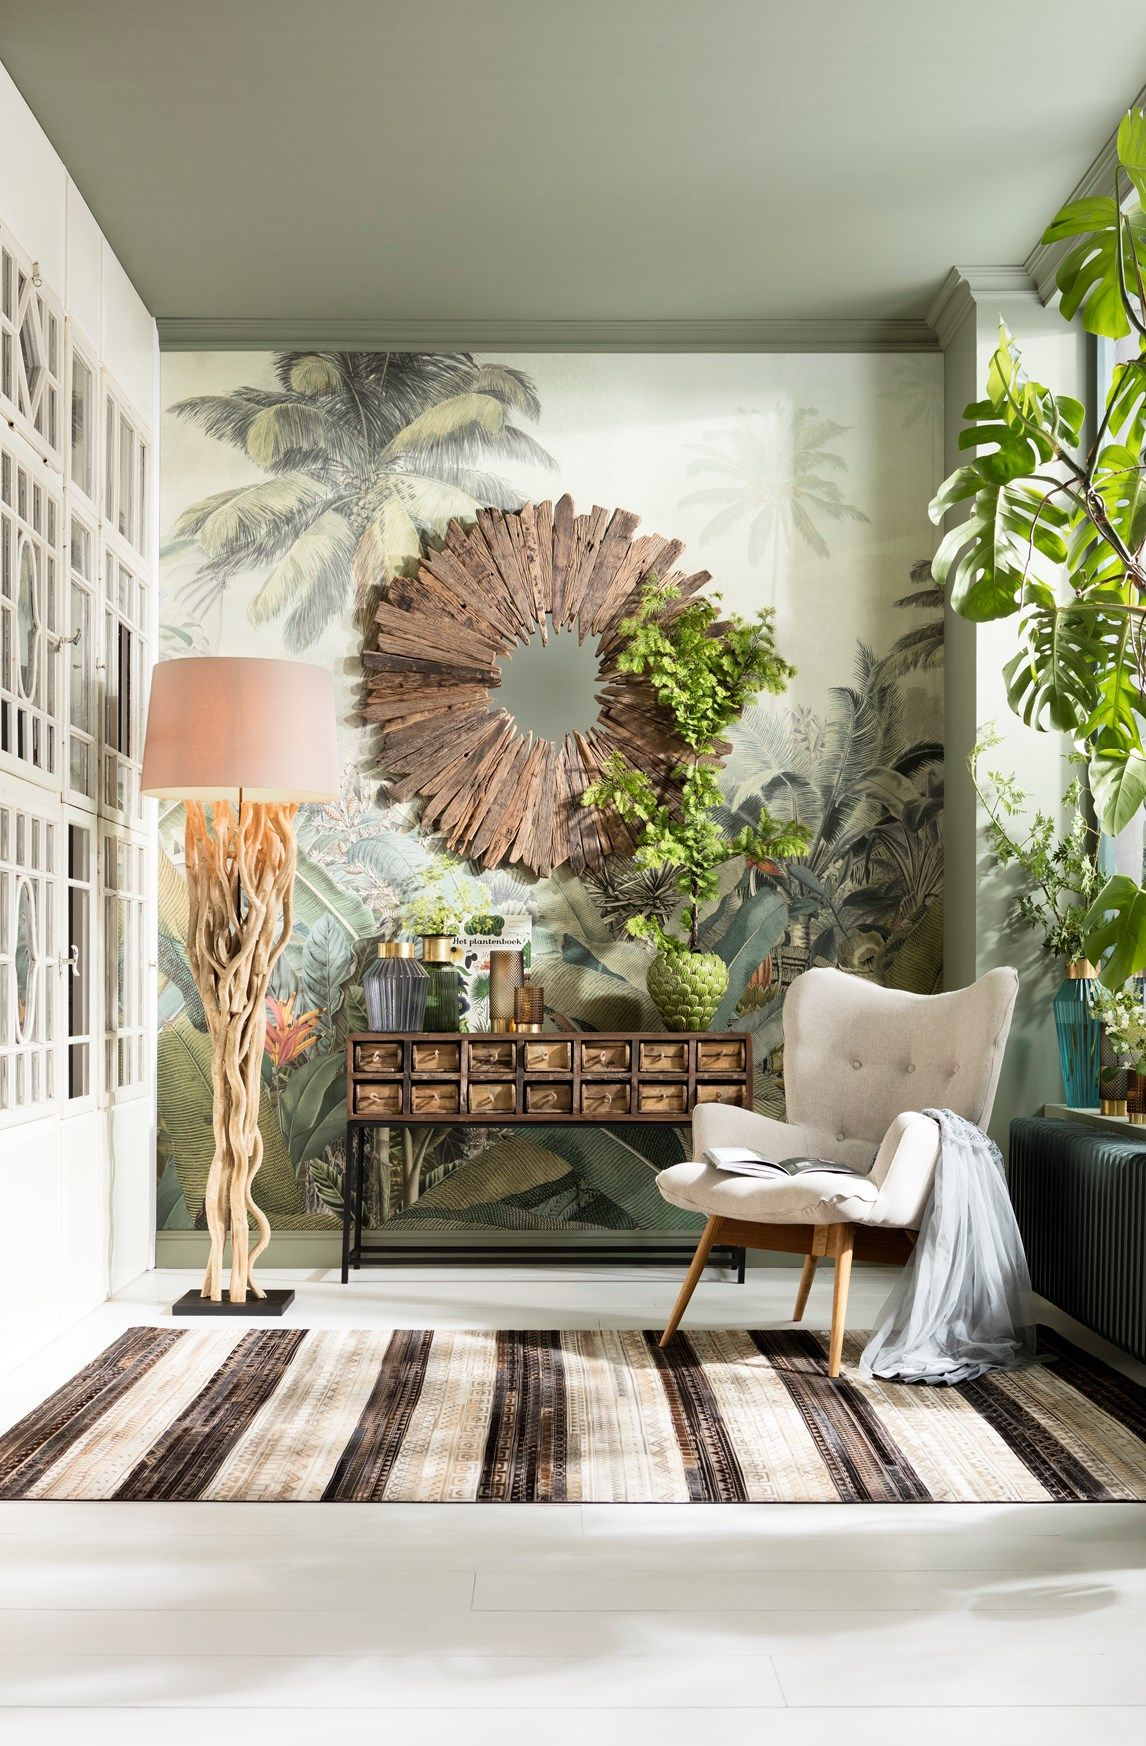 21 Fantastic Home Interior Design Ideas For 2019 With Images